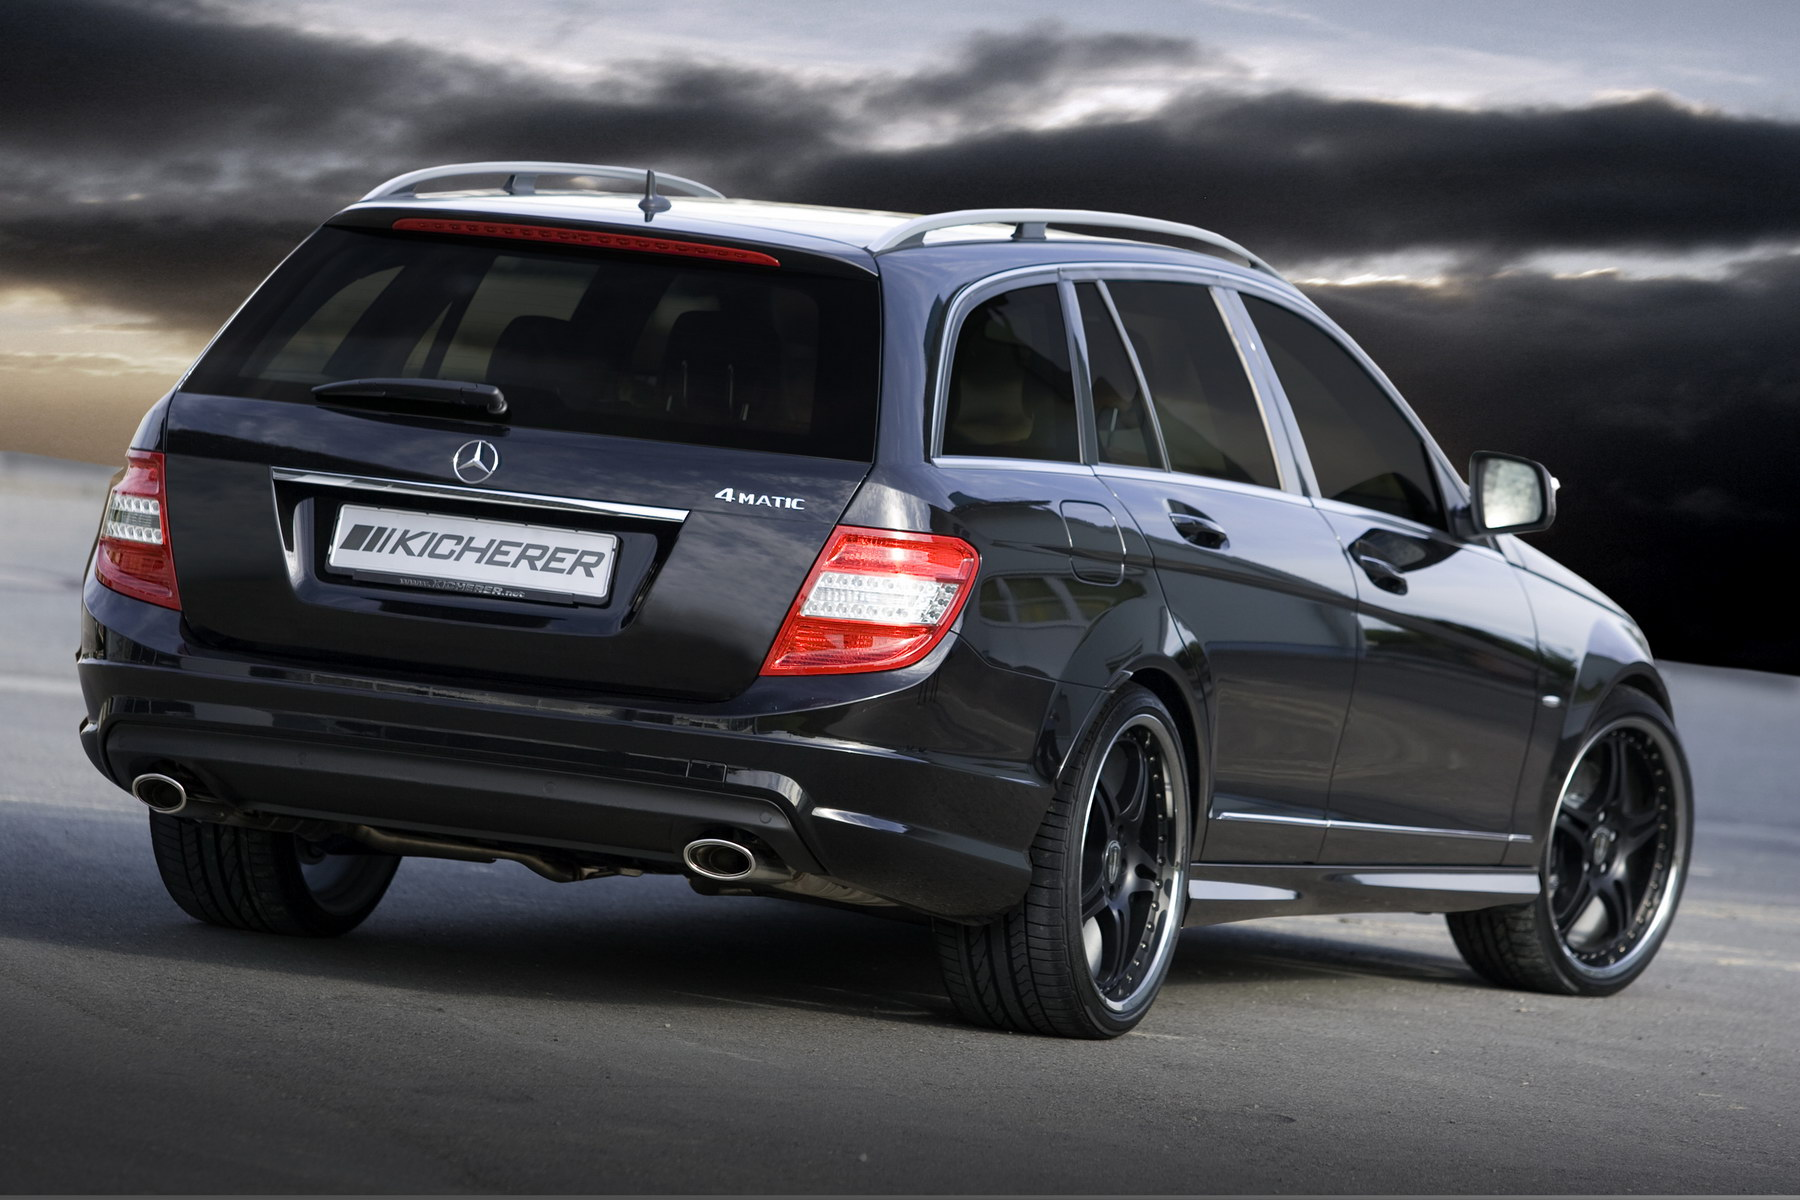 kicherer mercedes benz c320 cdi 4 matic photos photogallery with 5 pics cars. Black Bedroom Furniture Sets. Home Design Ideas